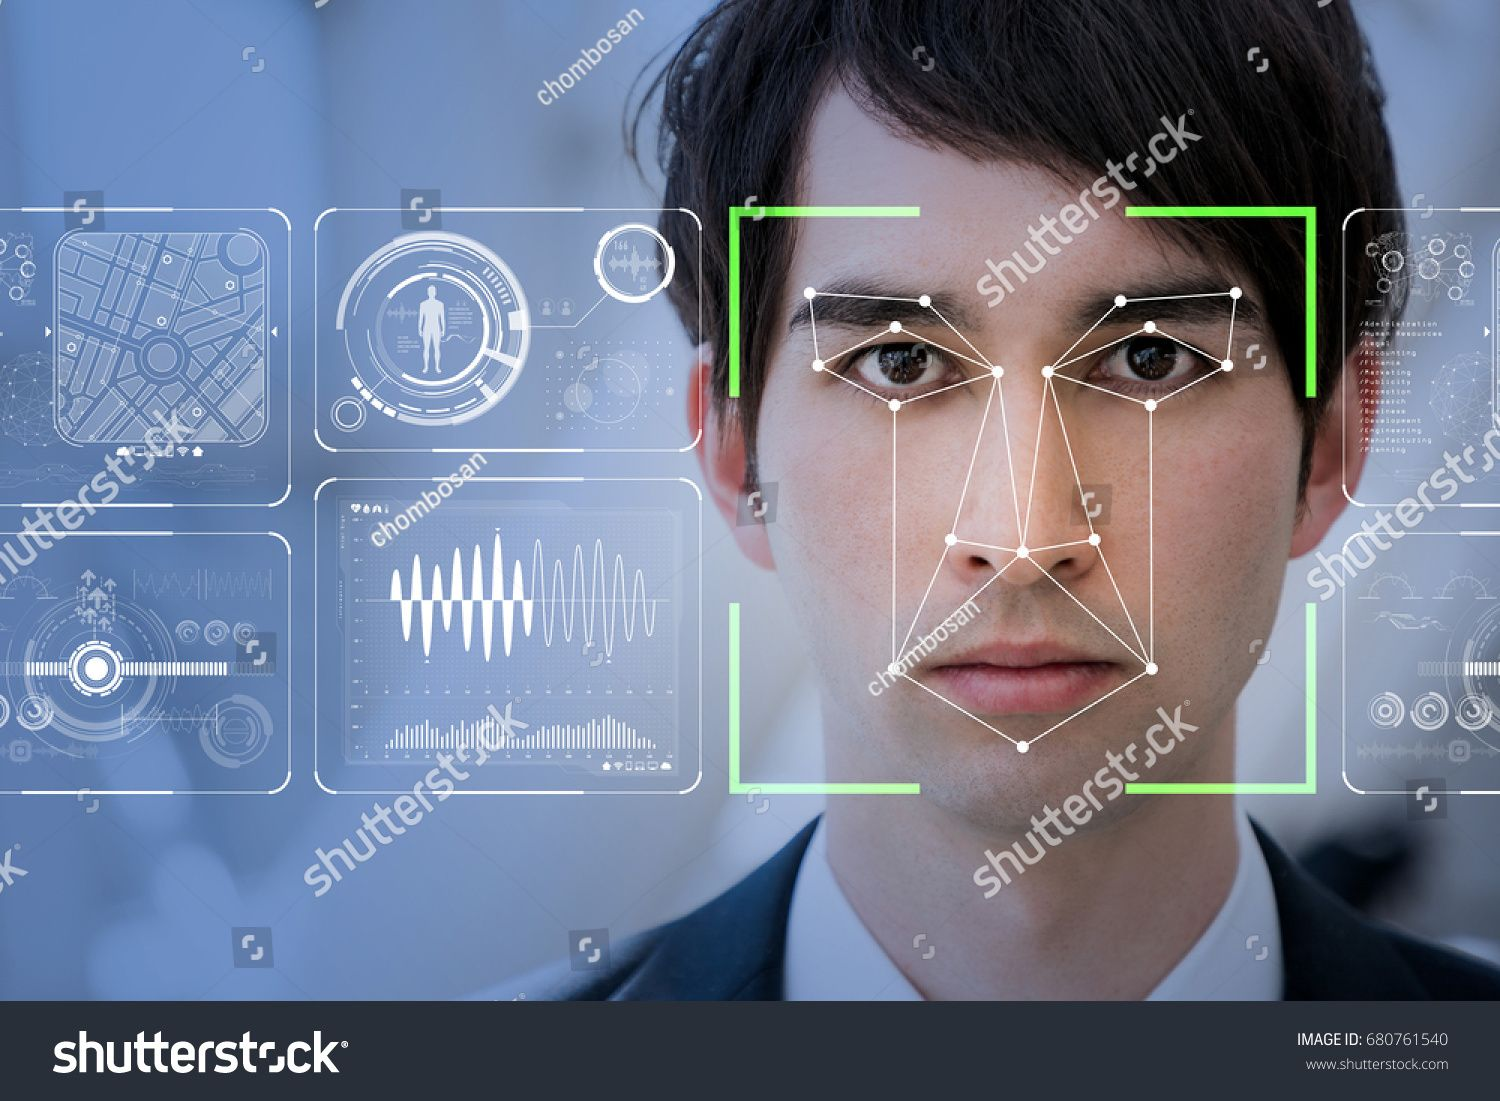 Facial Recognition System concept. Gesichtserkennung, Pi